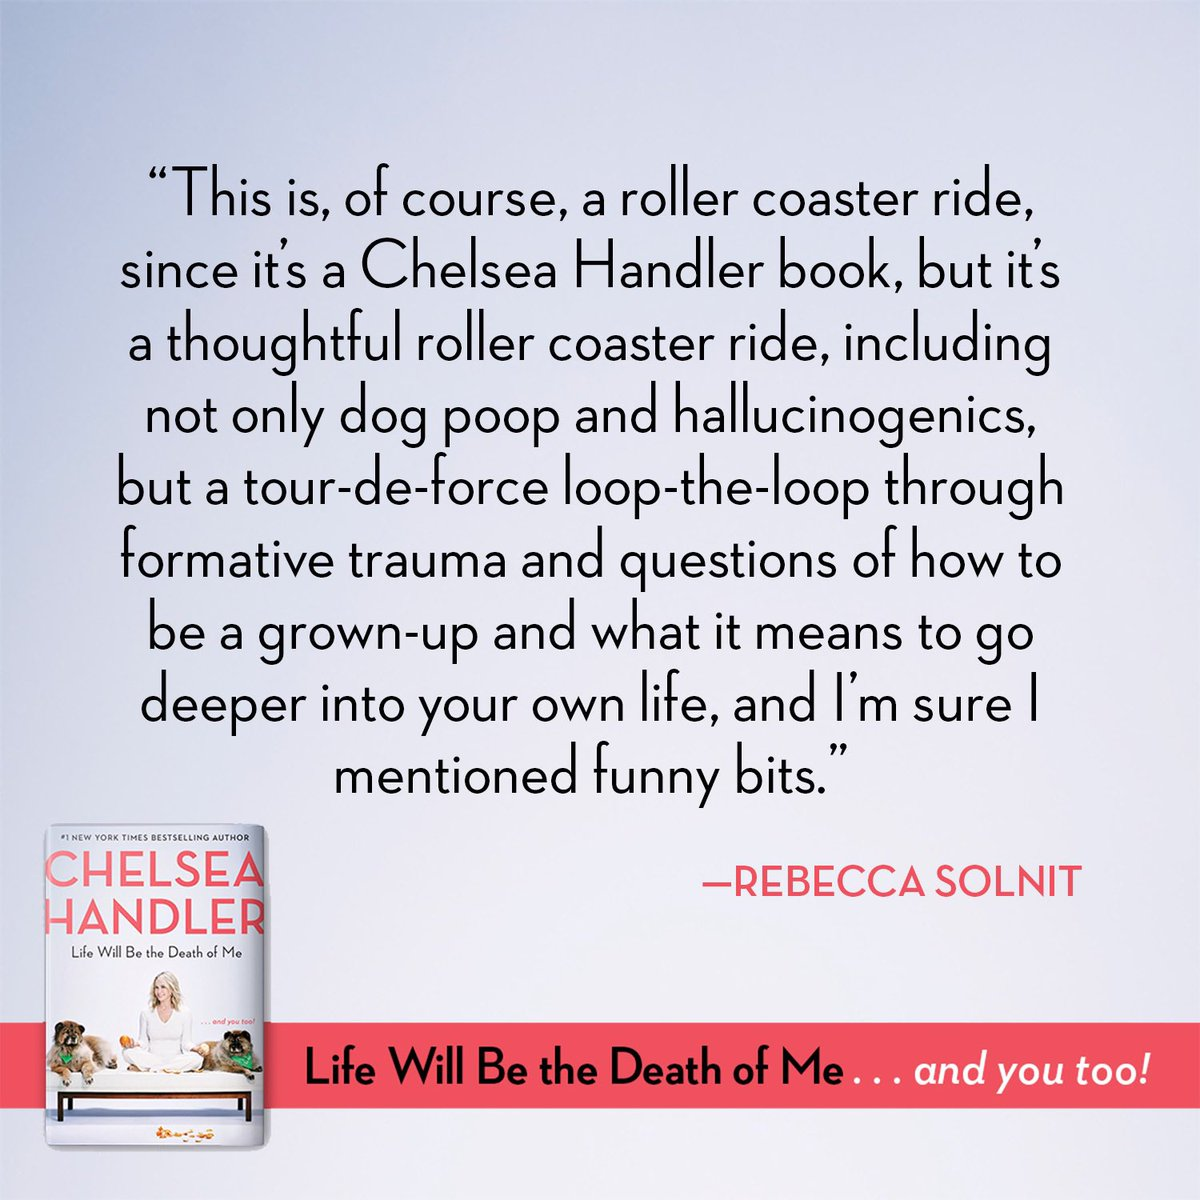 RT @chelseahandler: Life Will Be the Death of Me ???? Out APRIL 9! #LIFEWILLBETHEDEATHOFME  https://t.co/qJvOVkjgYt https://t.co/4kcZ7kd63U